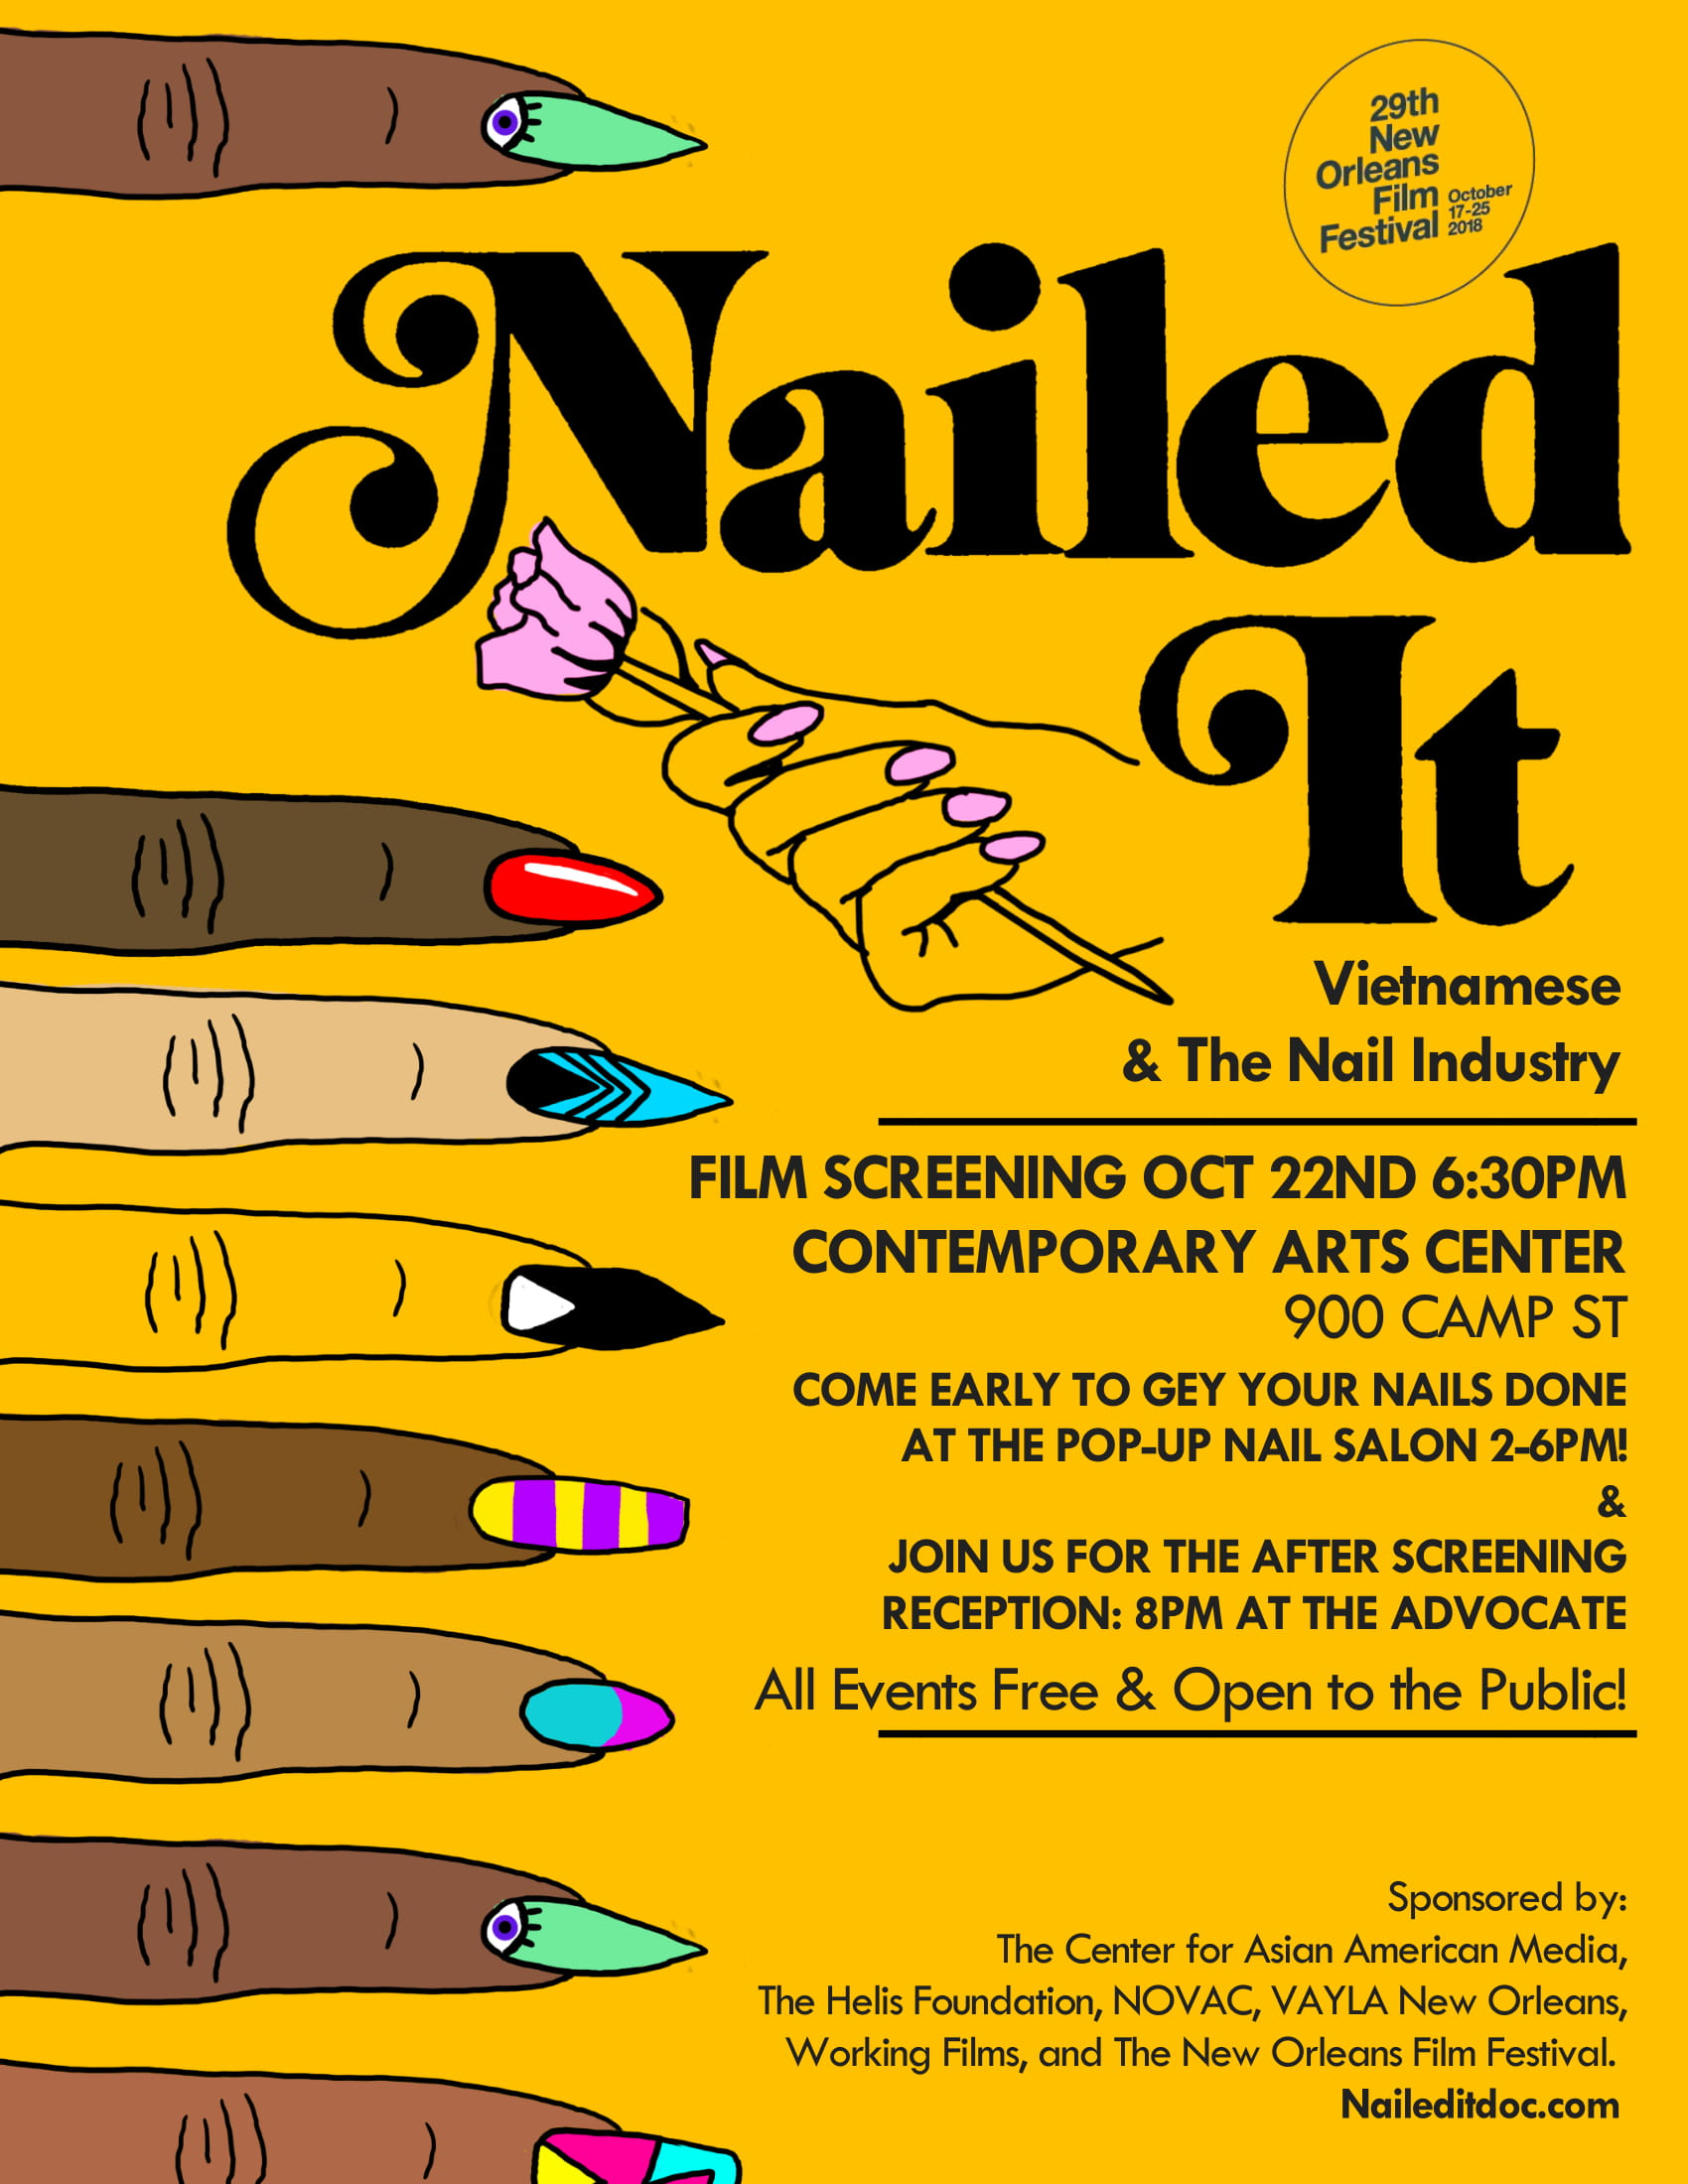 Nailed It Film Screening - Contemporary Arts Center | Things